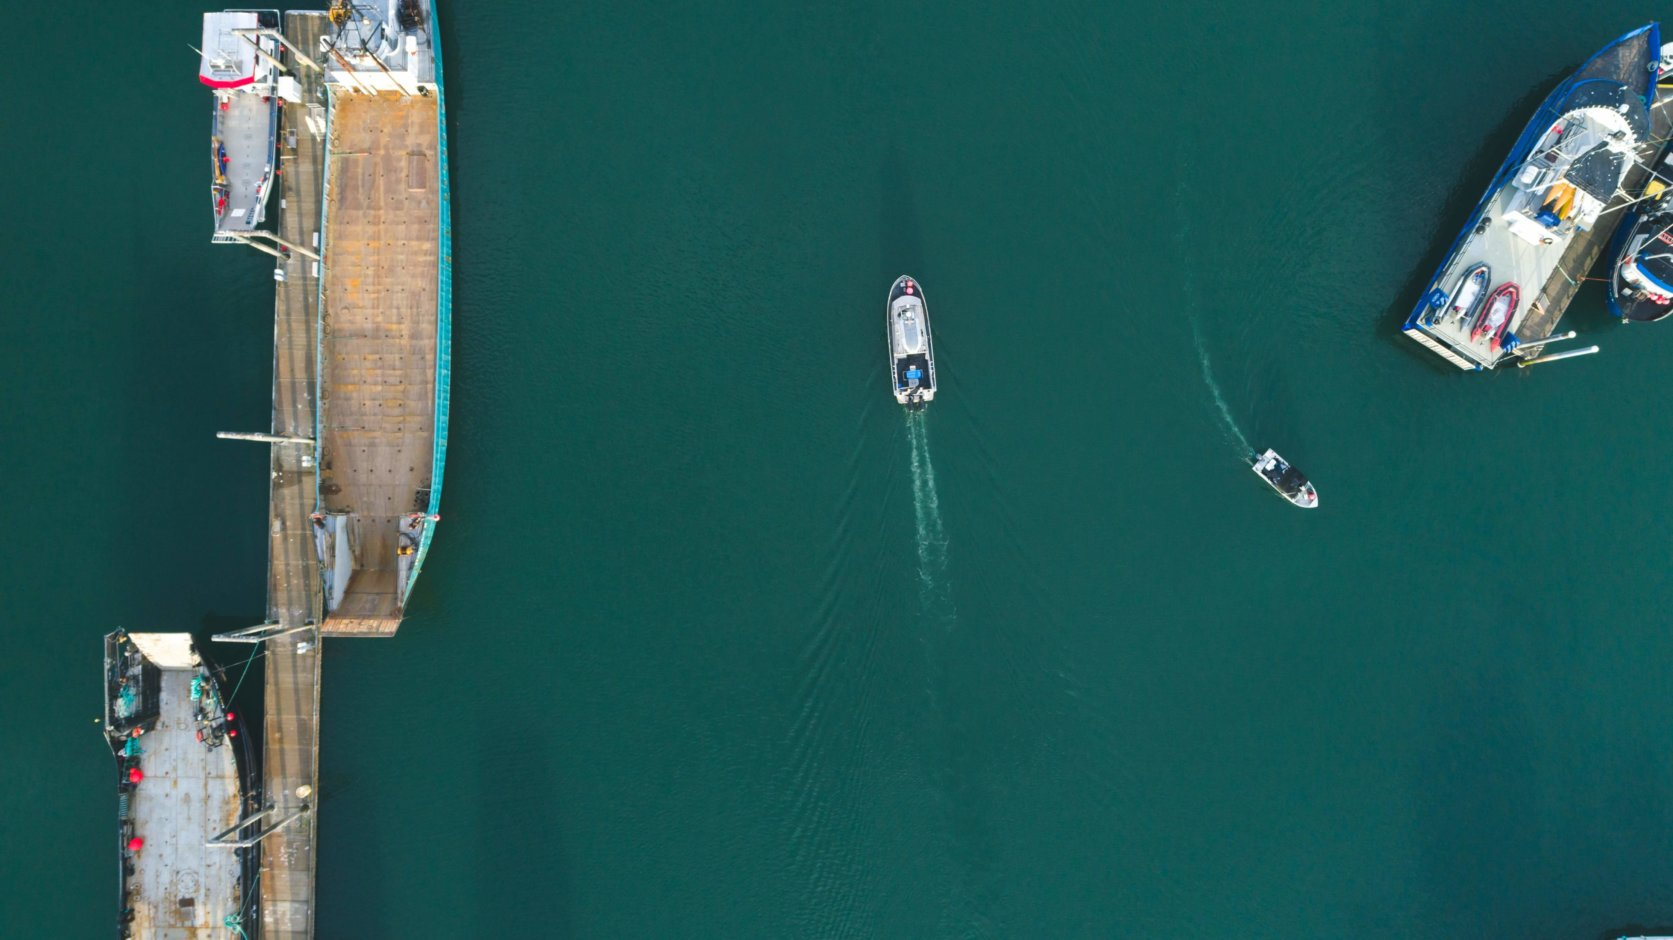 Aerial photograph of a boat gliding through the ocean next a tanker